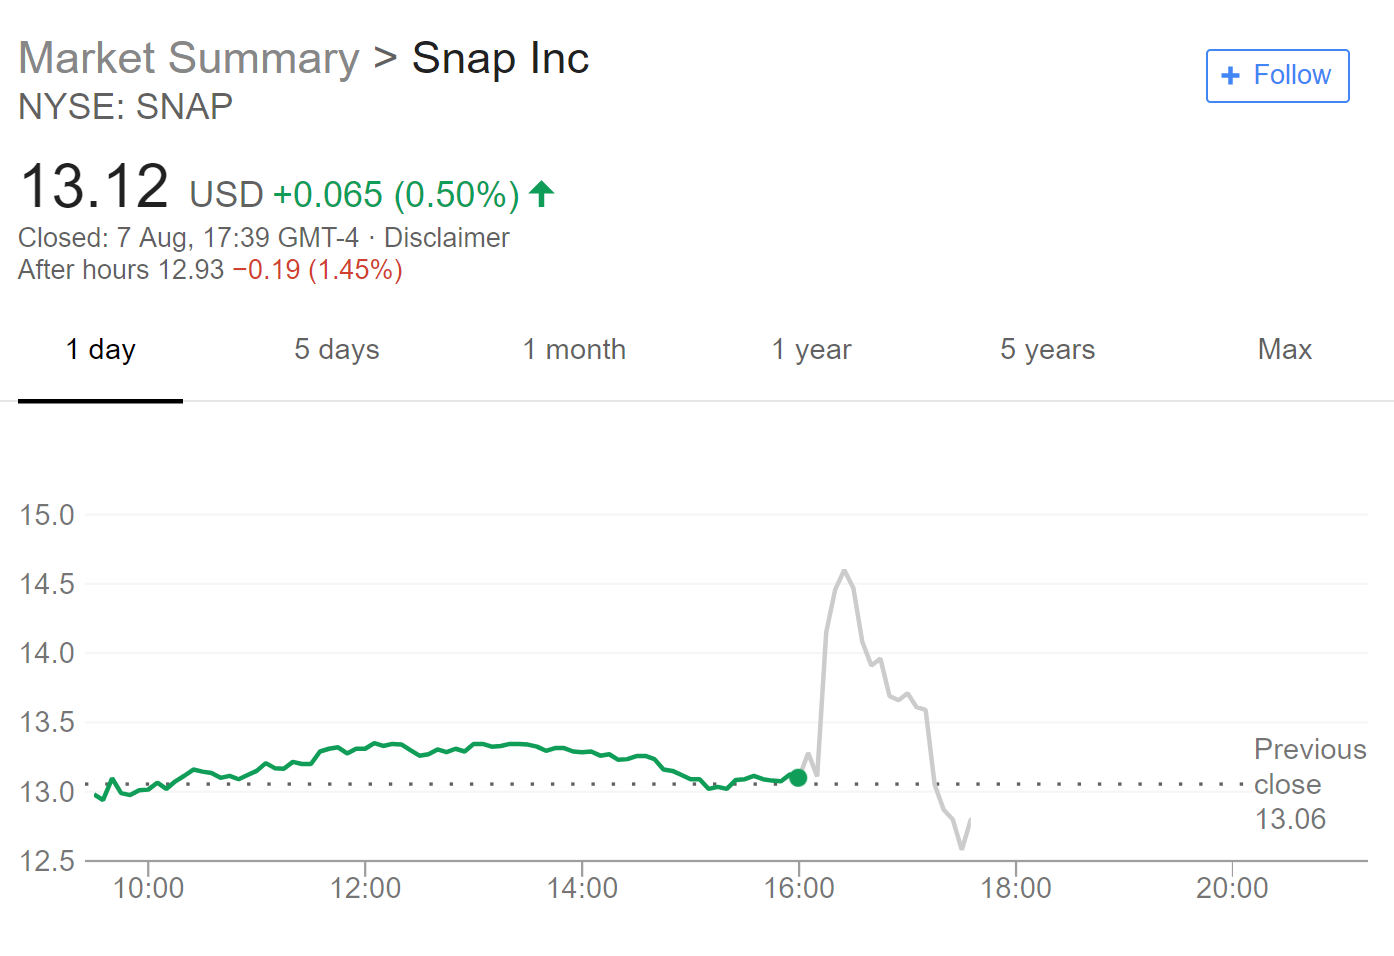 Snapchat Loses 3 Million Daily Users, But Posts Q2 Earnings Beat